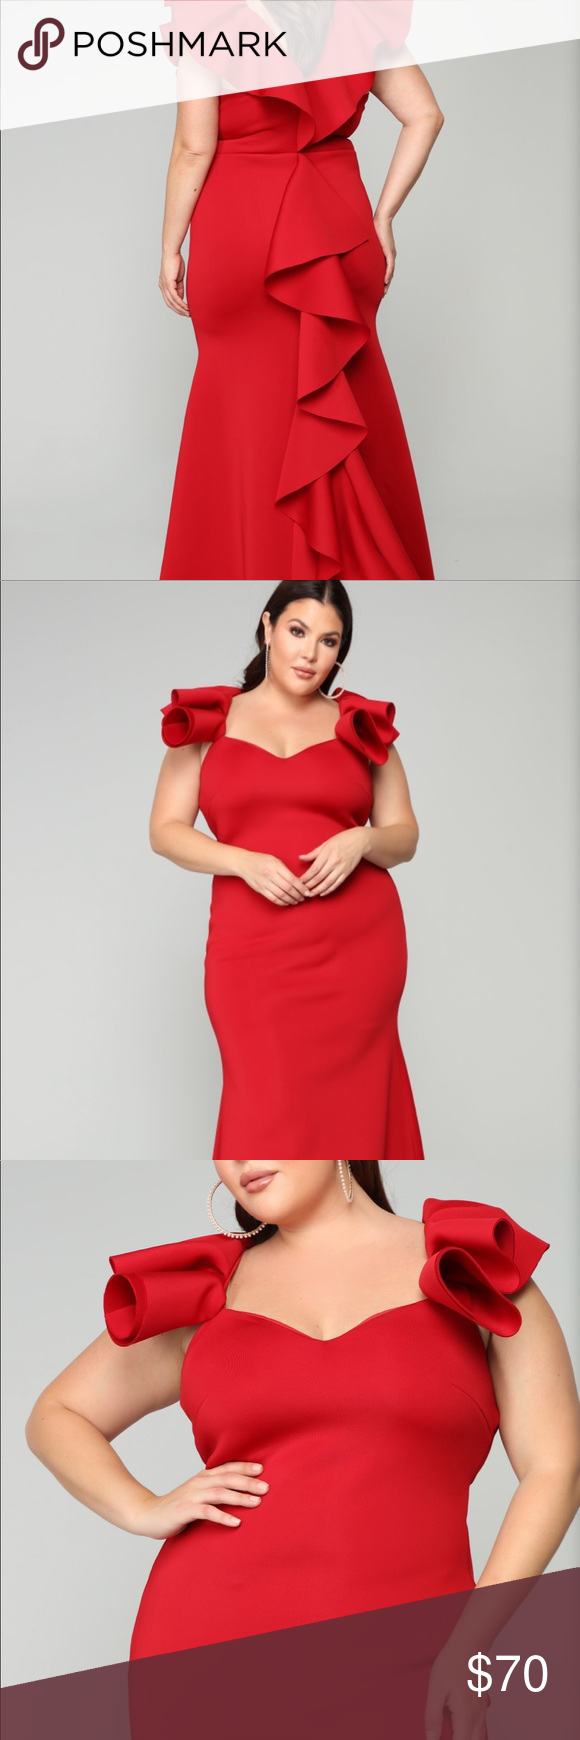 1236bb3f6 Salty Babe Mermaid Dress - Red Fashion Nova Curve Off Shoulder, Ruffle  Detail On The Back, Mermaid Fit 95% Polyester 5% Spandex, Lining 100%  Polyester ...